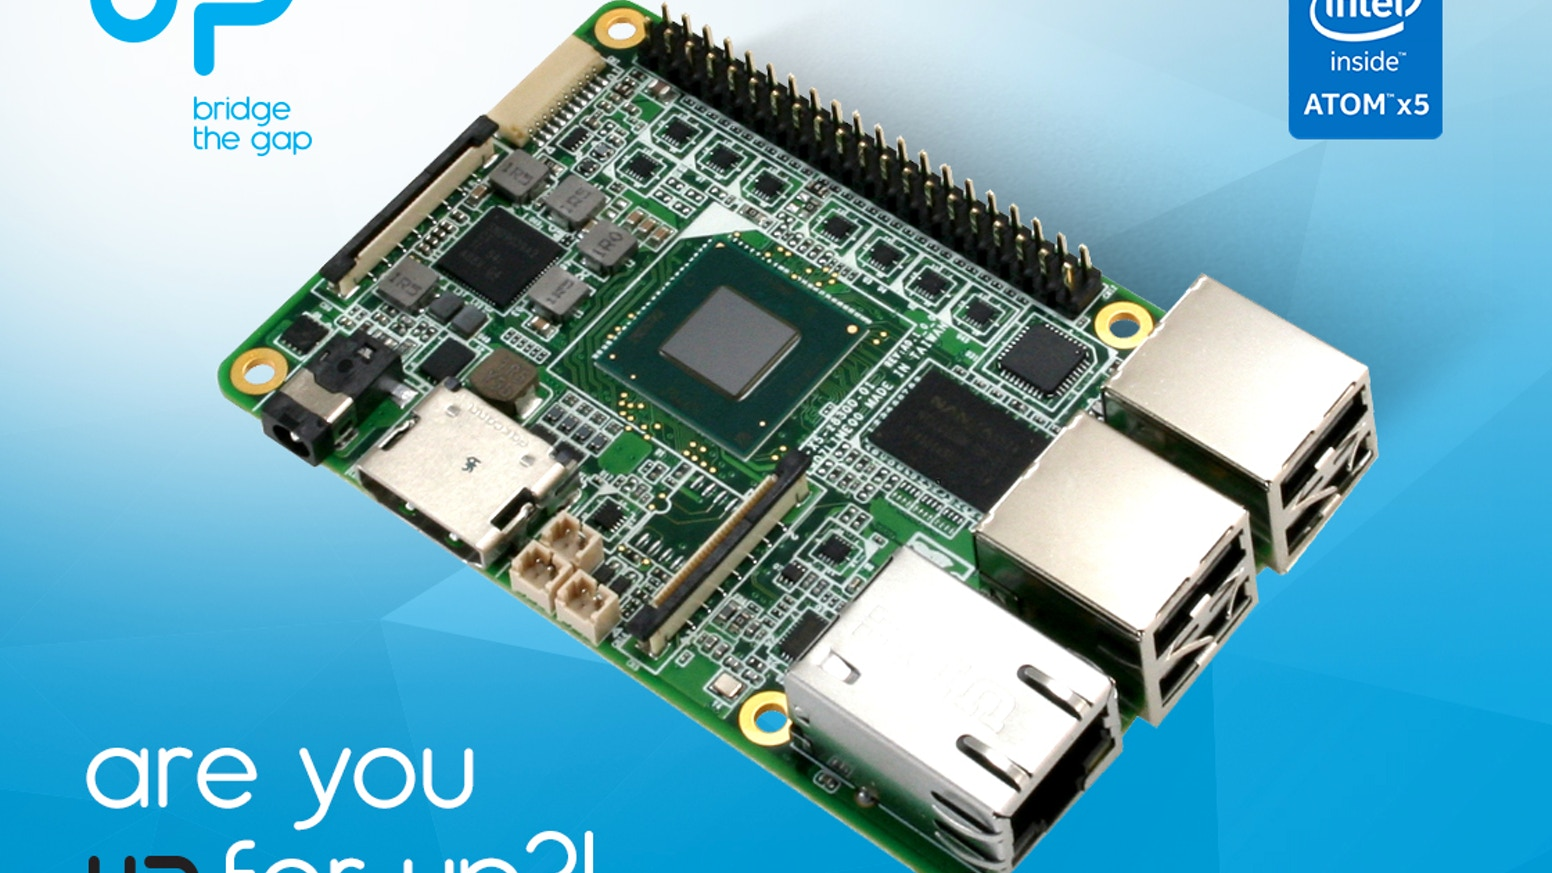 UP - Intel x5-Z8300 board in a Raspberry Pi2 form factor by